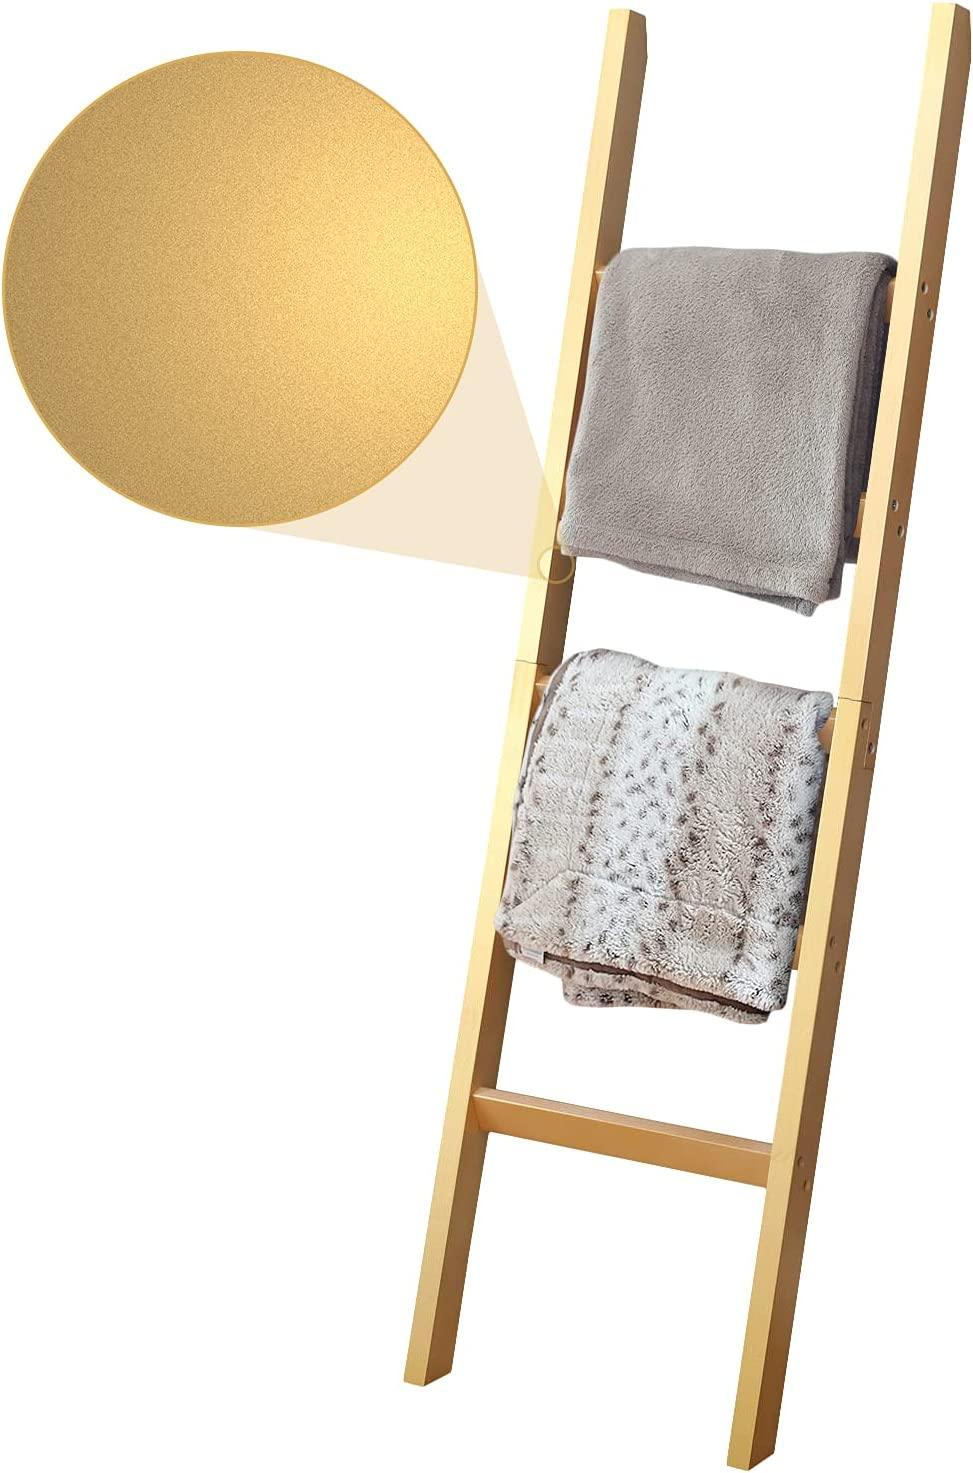 Gold Blanket Ladder Leaning Rack (5 Tier) – Wooden Farmhouse Home Decor – Holder for Quilts, Towels & Stand for Throws – Golden Decorative Storage Shelf – Leaning Blanket Ladder